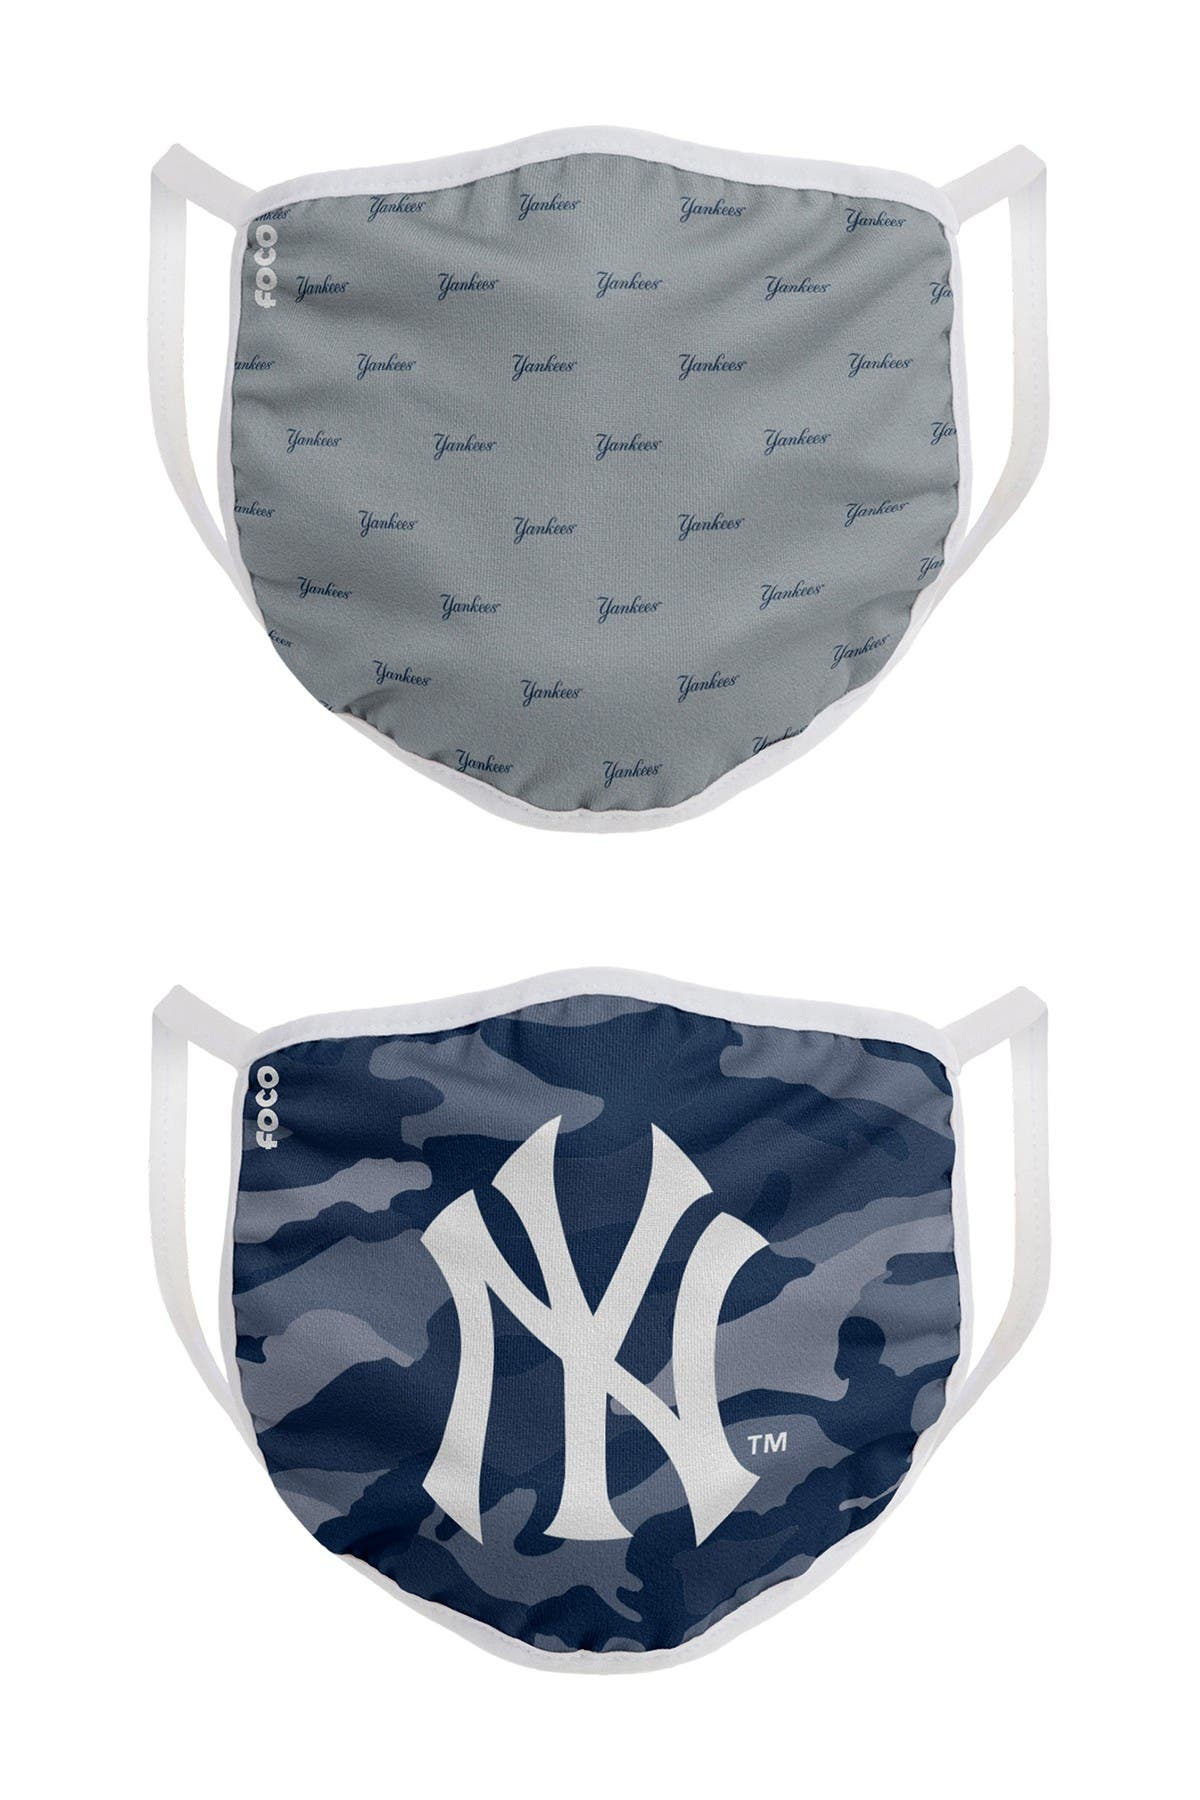 Image of FOCO MLB New York Yankees Clutch Printed Face Cover - Pack of 2